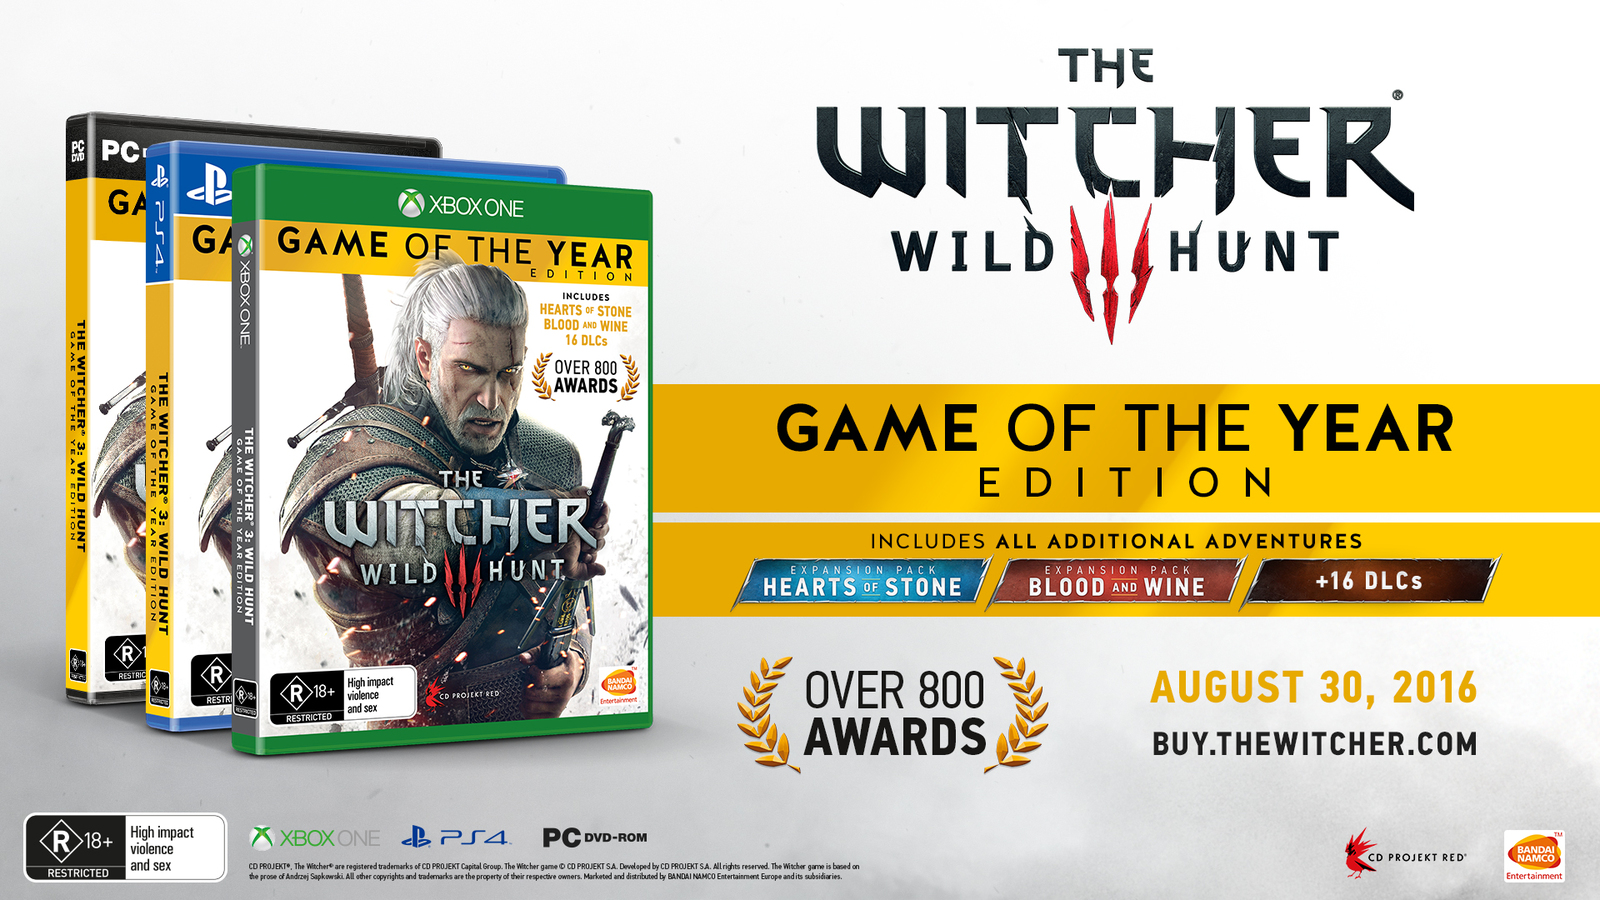 The Witcher 3: Wild Hunt Game of the Year Edition for Xbox One image